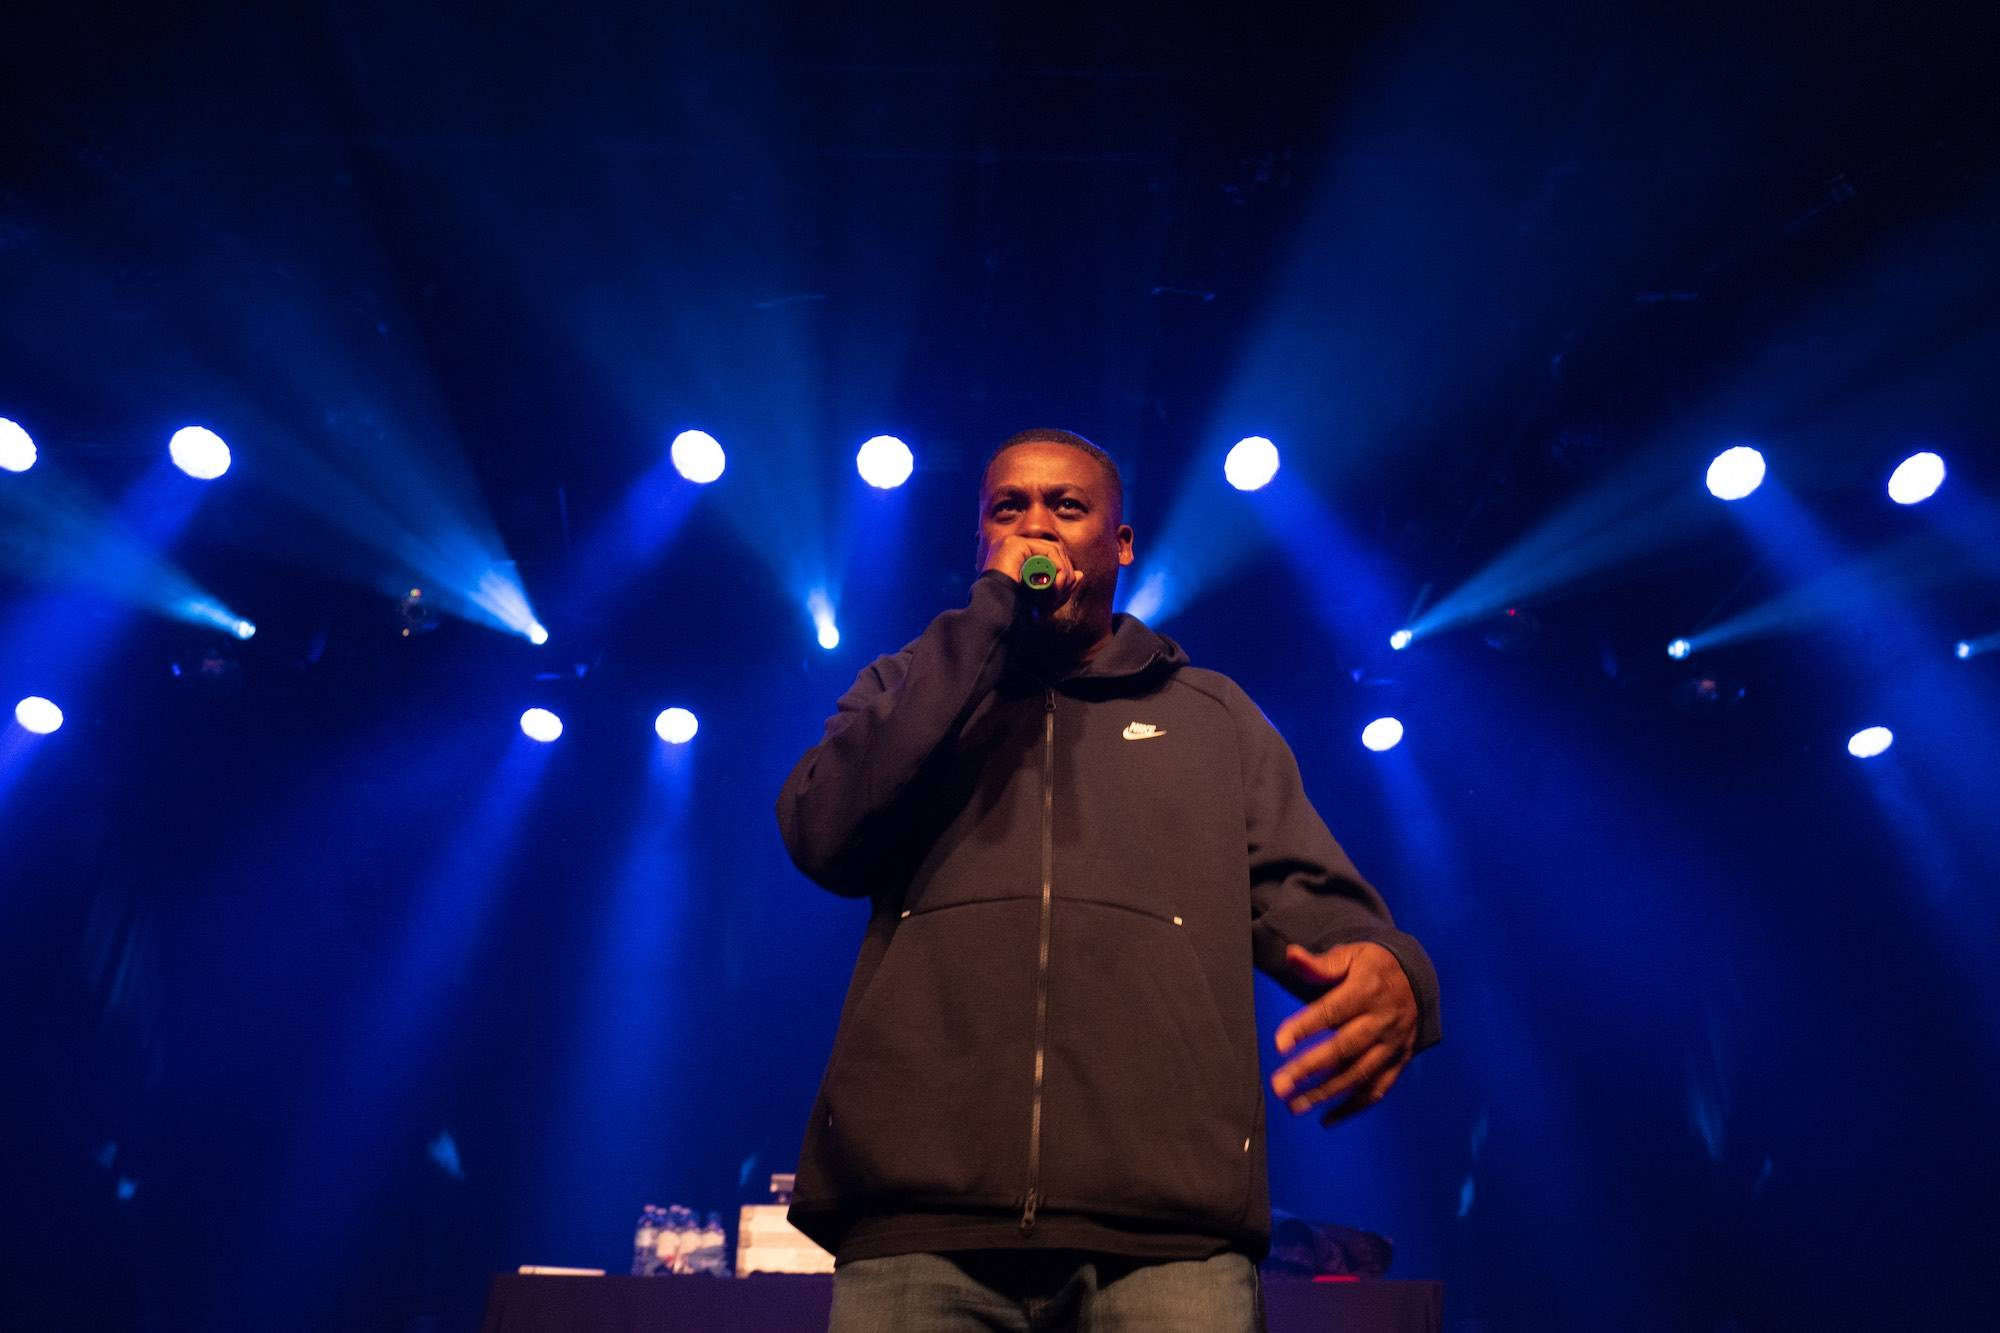 GZA at the Commodore Ballroom, Vancouver, Jan 20 2020. Scott Alexander photo.